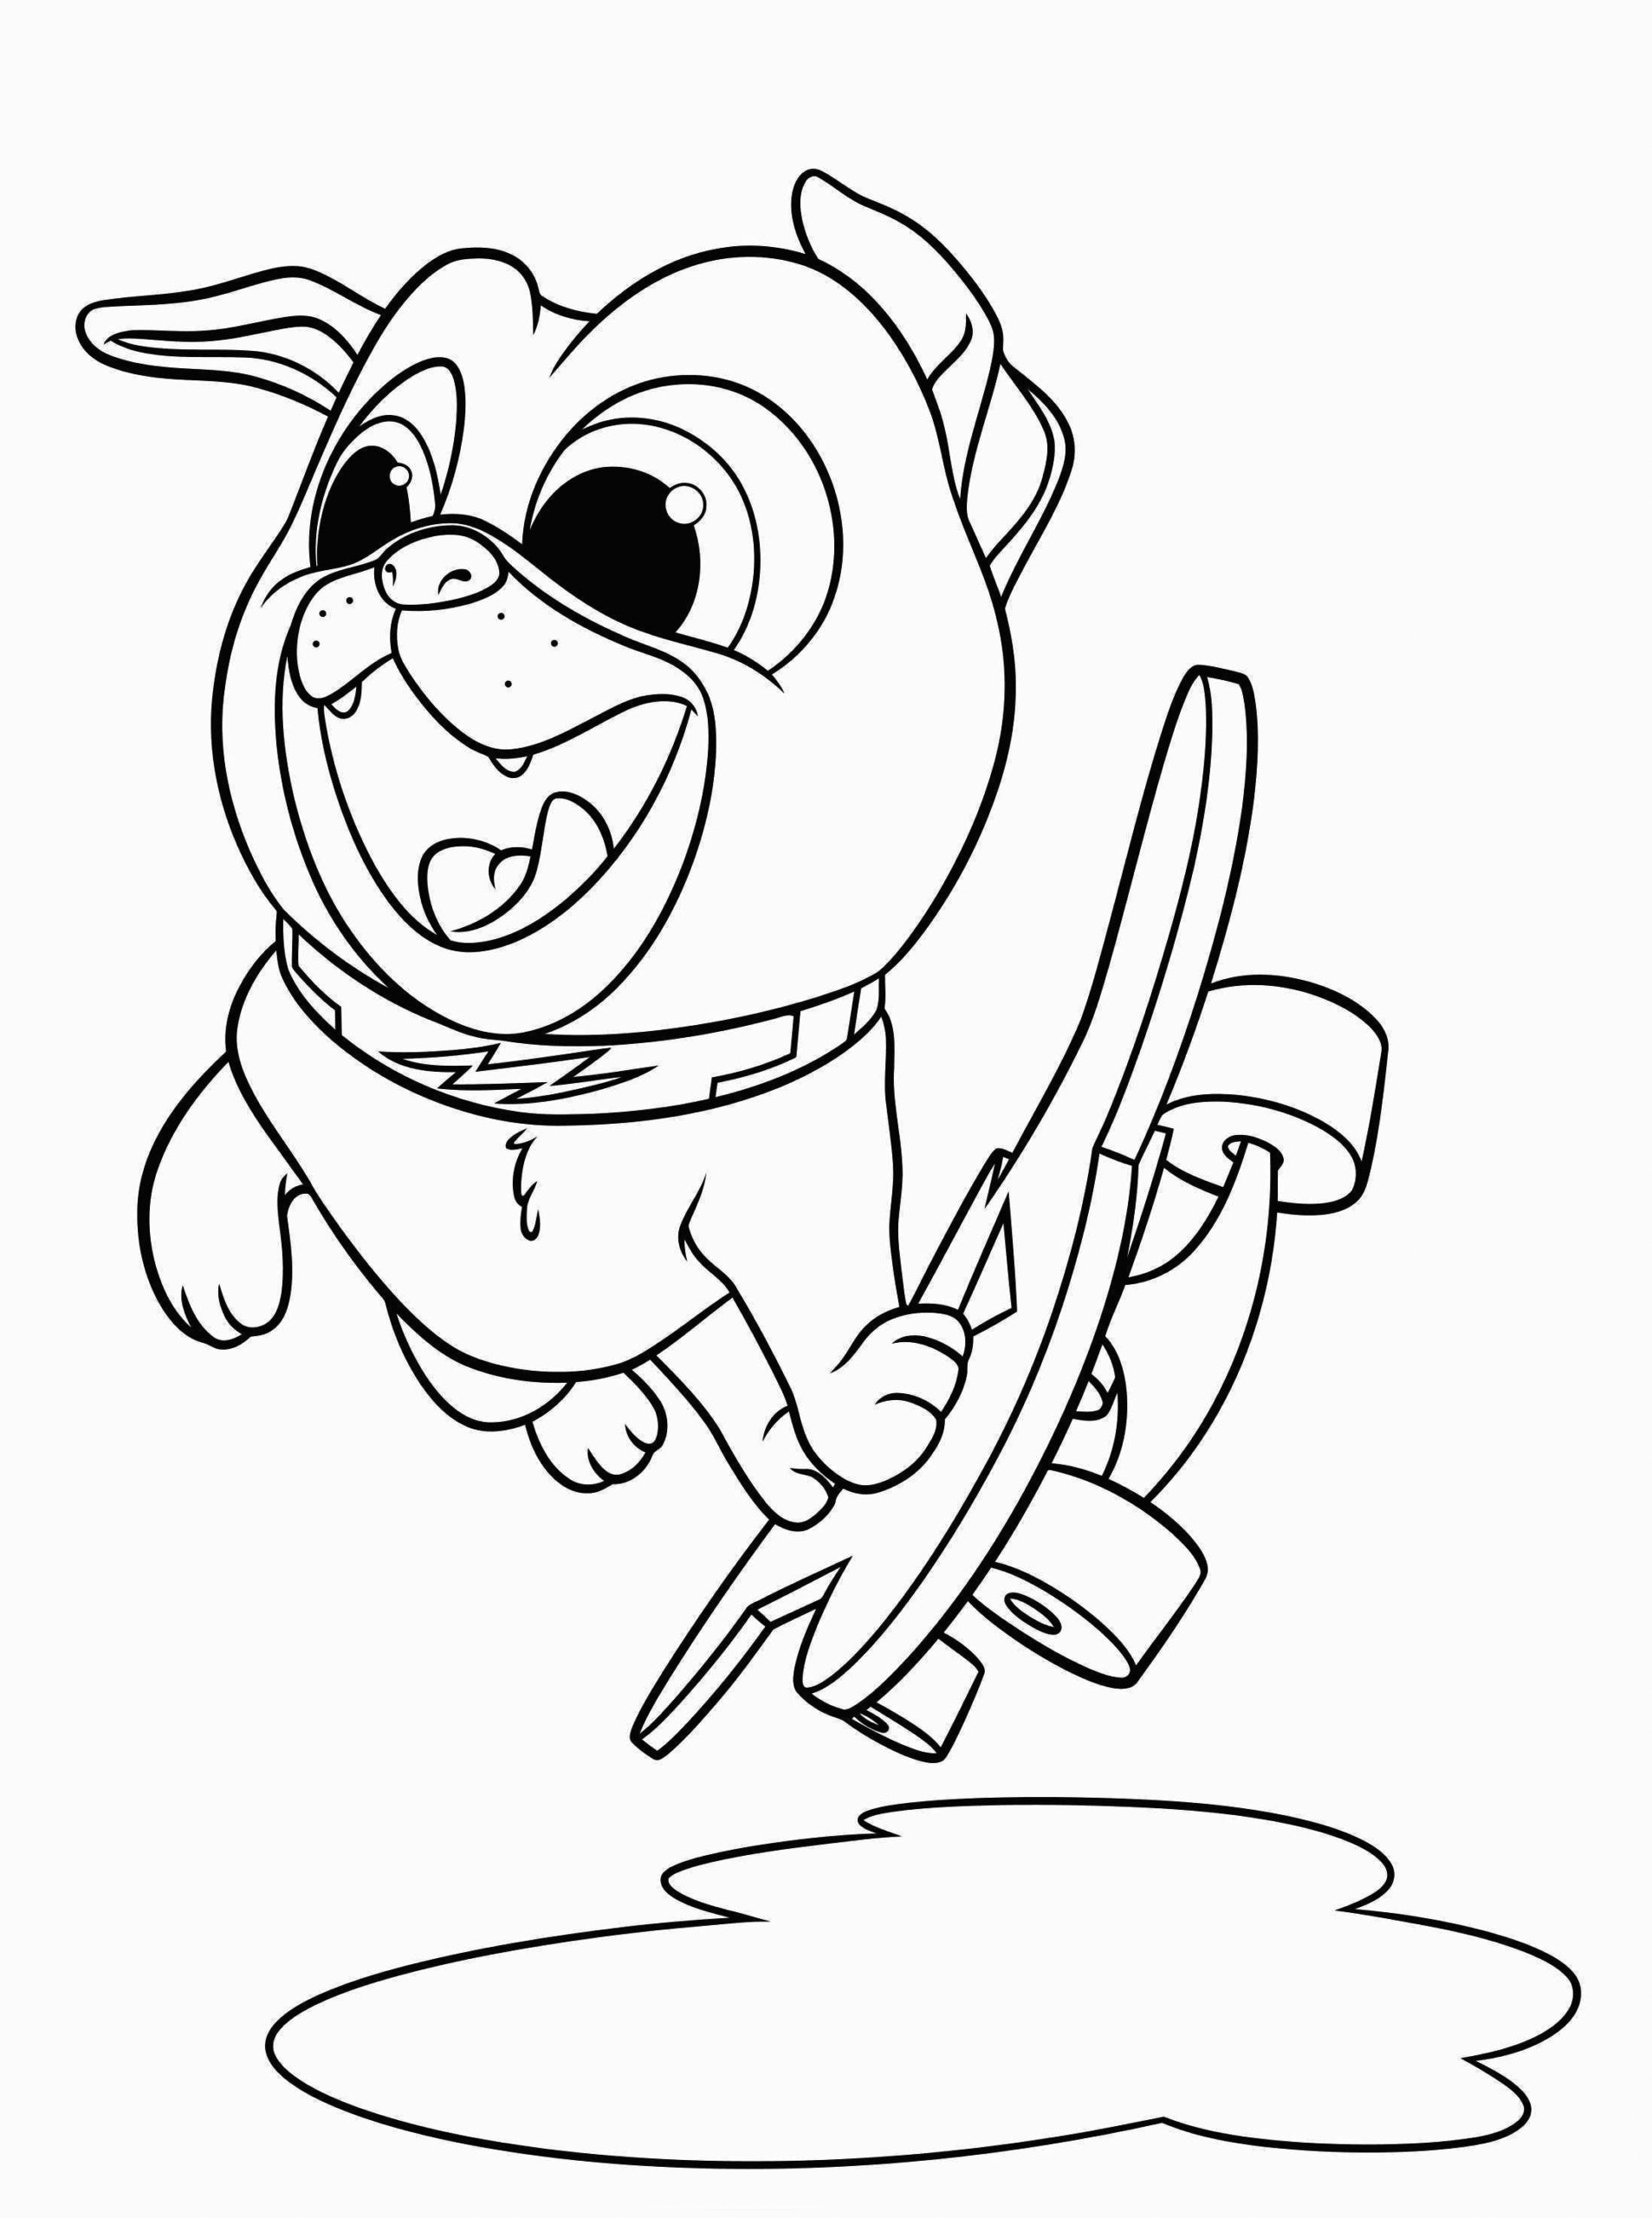 Puppy Dog Pals Coloring Pages - Best Coloring Pages For Kids